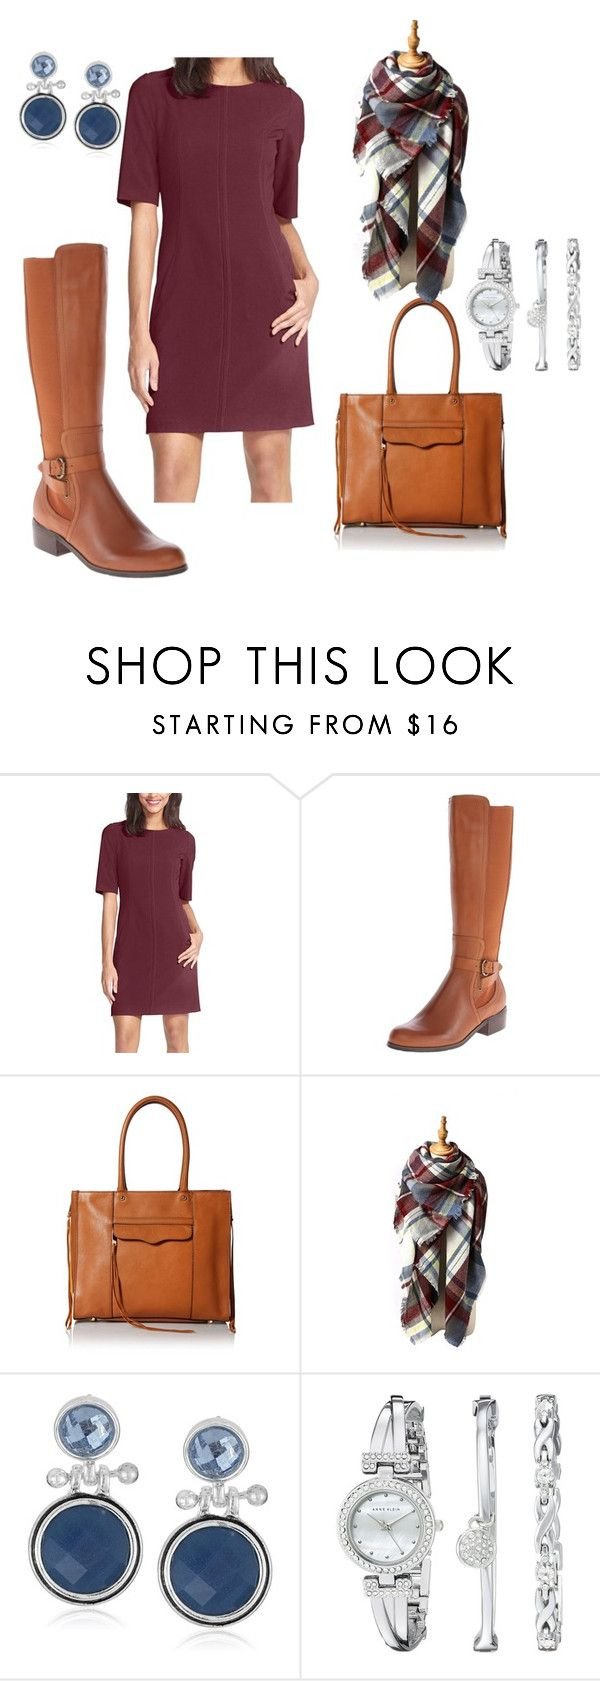 """Amazon - Boots for Work"" by herstyleandgrace on Polyvore featuring Corso Como, Rebecca Minkoff, Napier and Anne Klein"